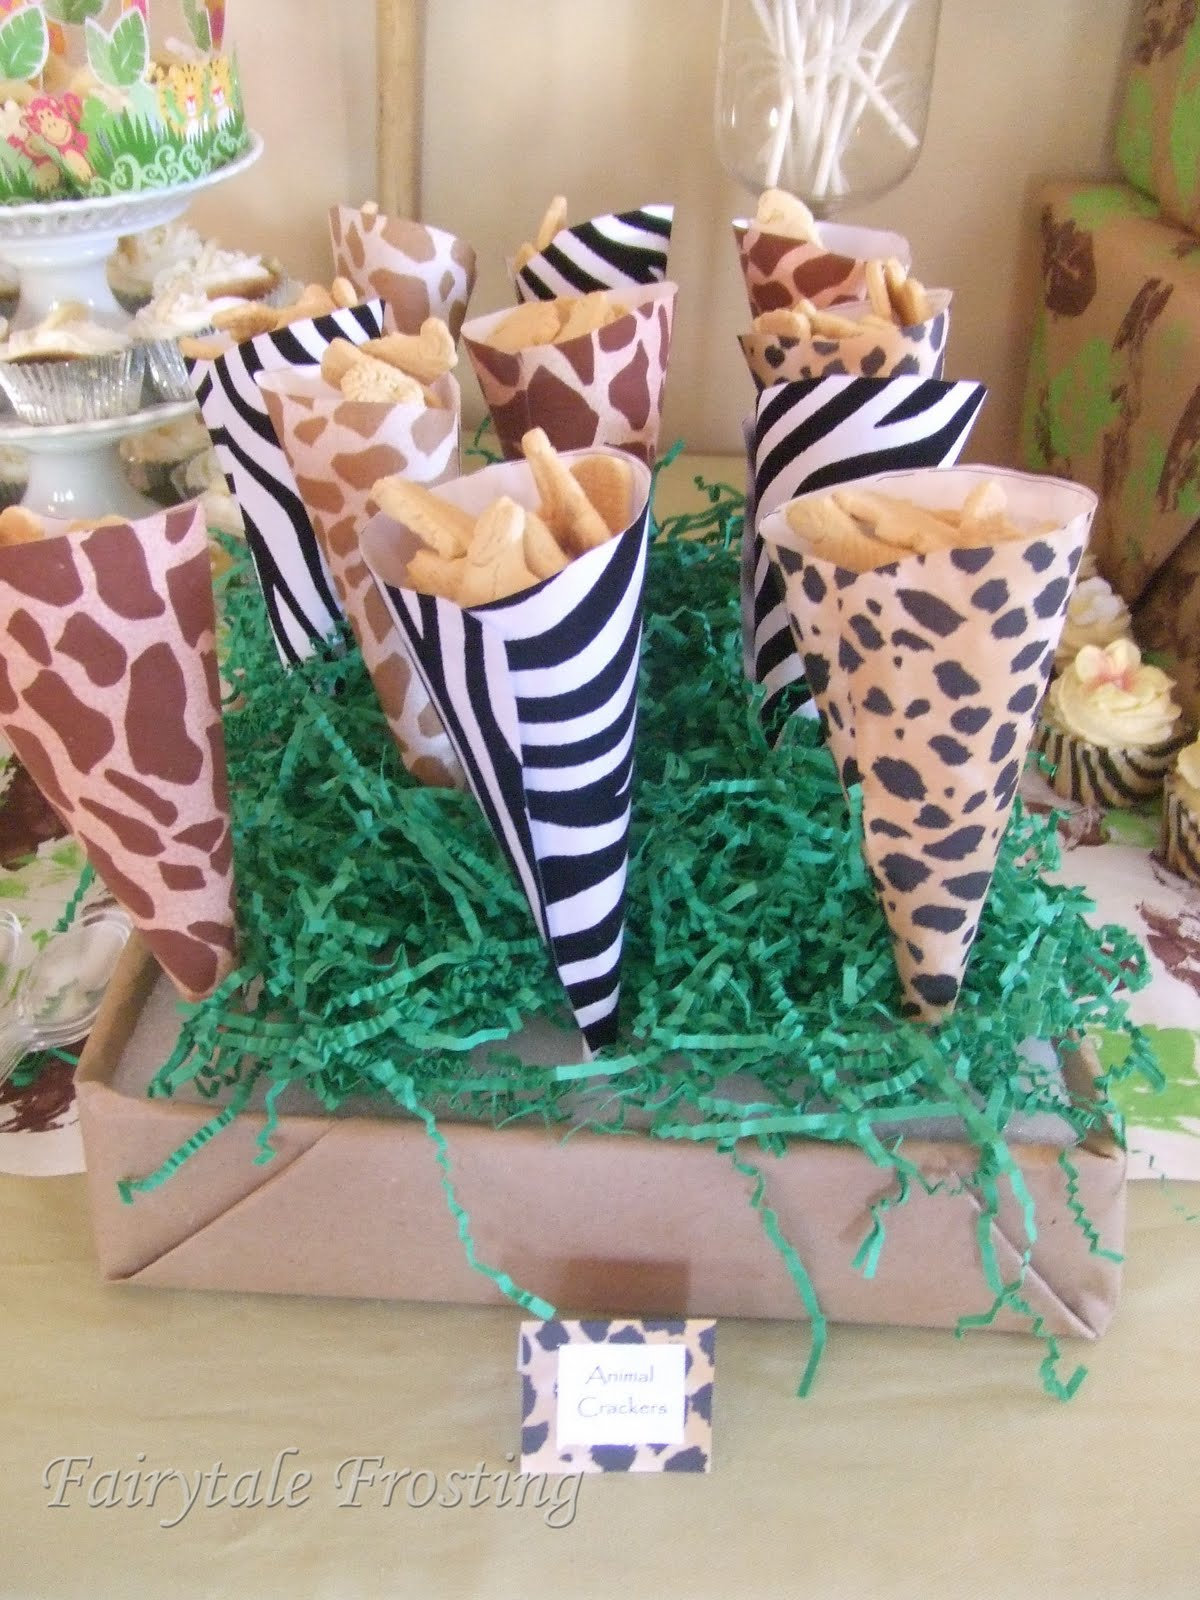 Fairytale Frosting: Baby Culver's Jungle Safari